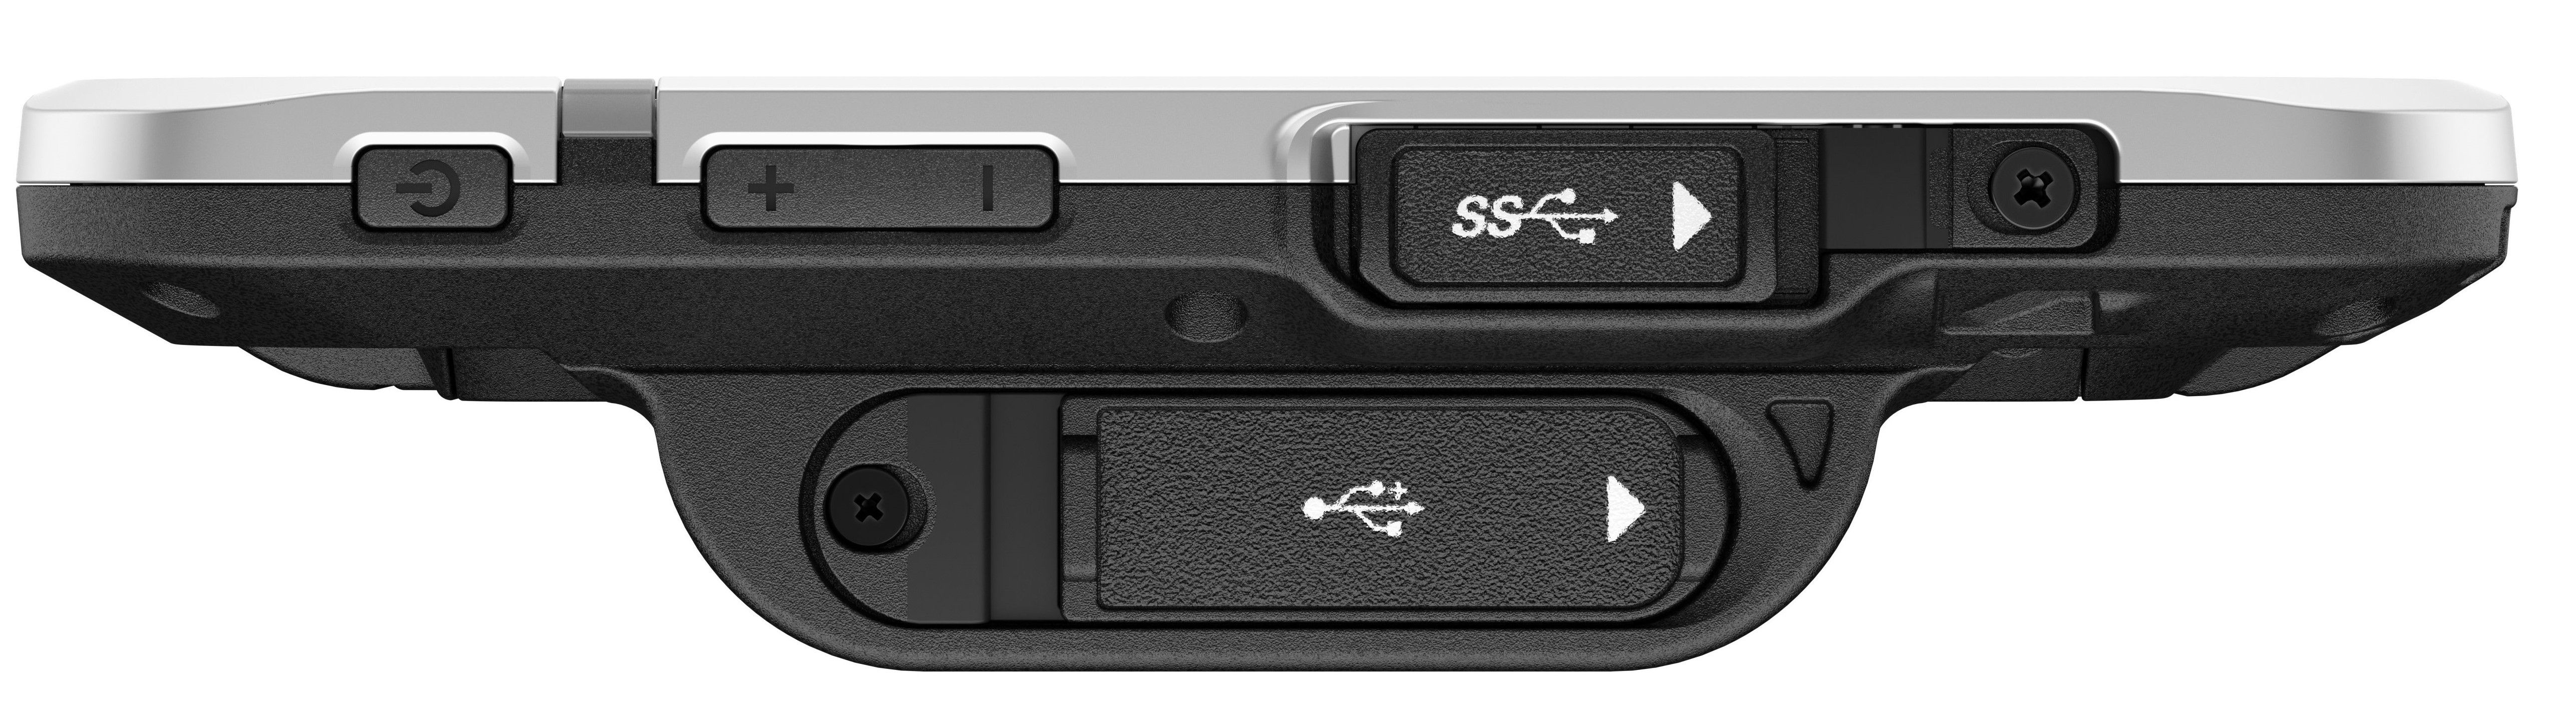 Side view of the Toughbook S1 showing the optional USB Type-A port